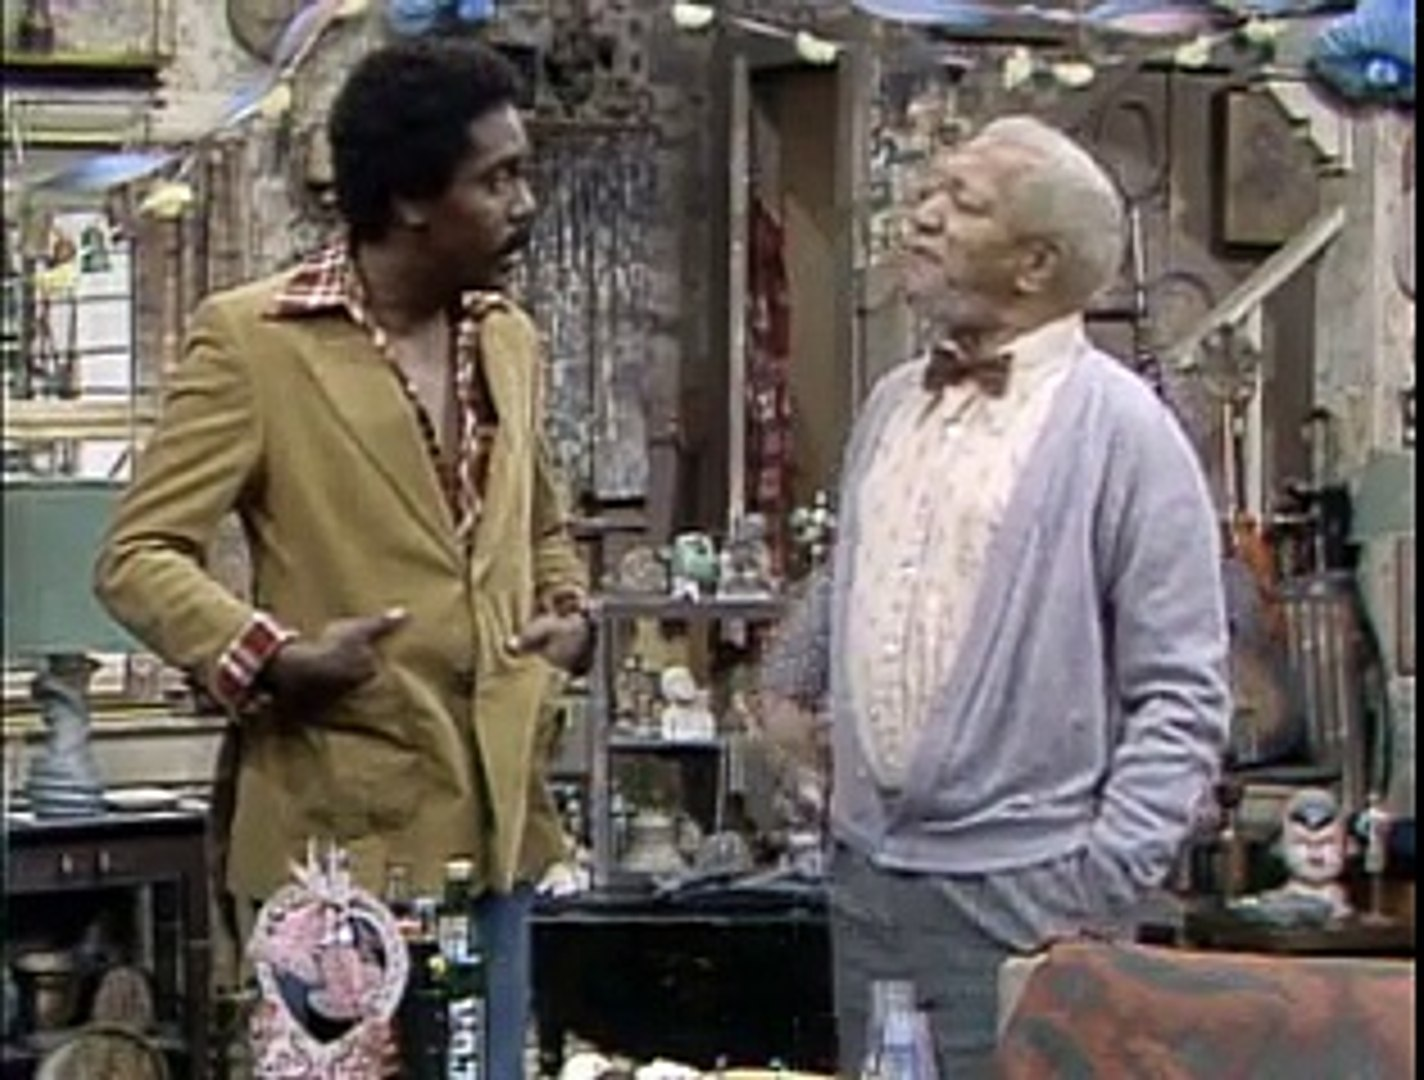 SANFORD AND SON S6 E17